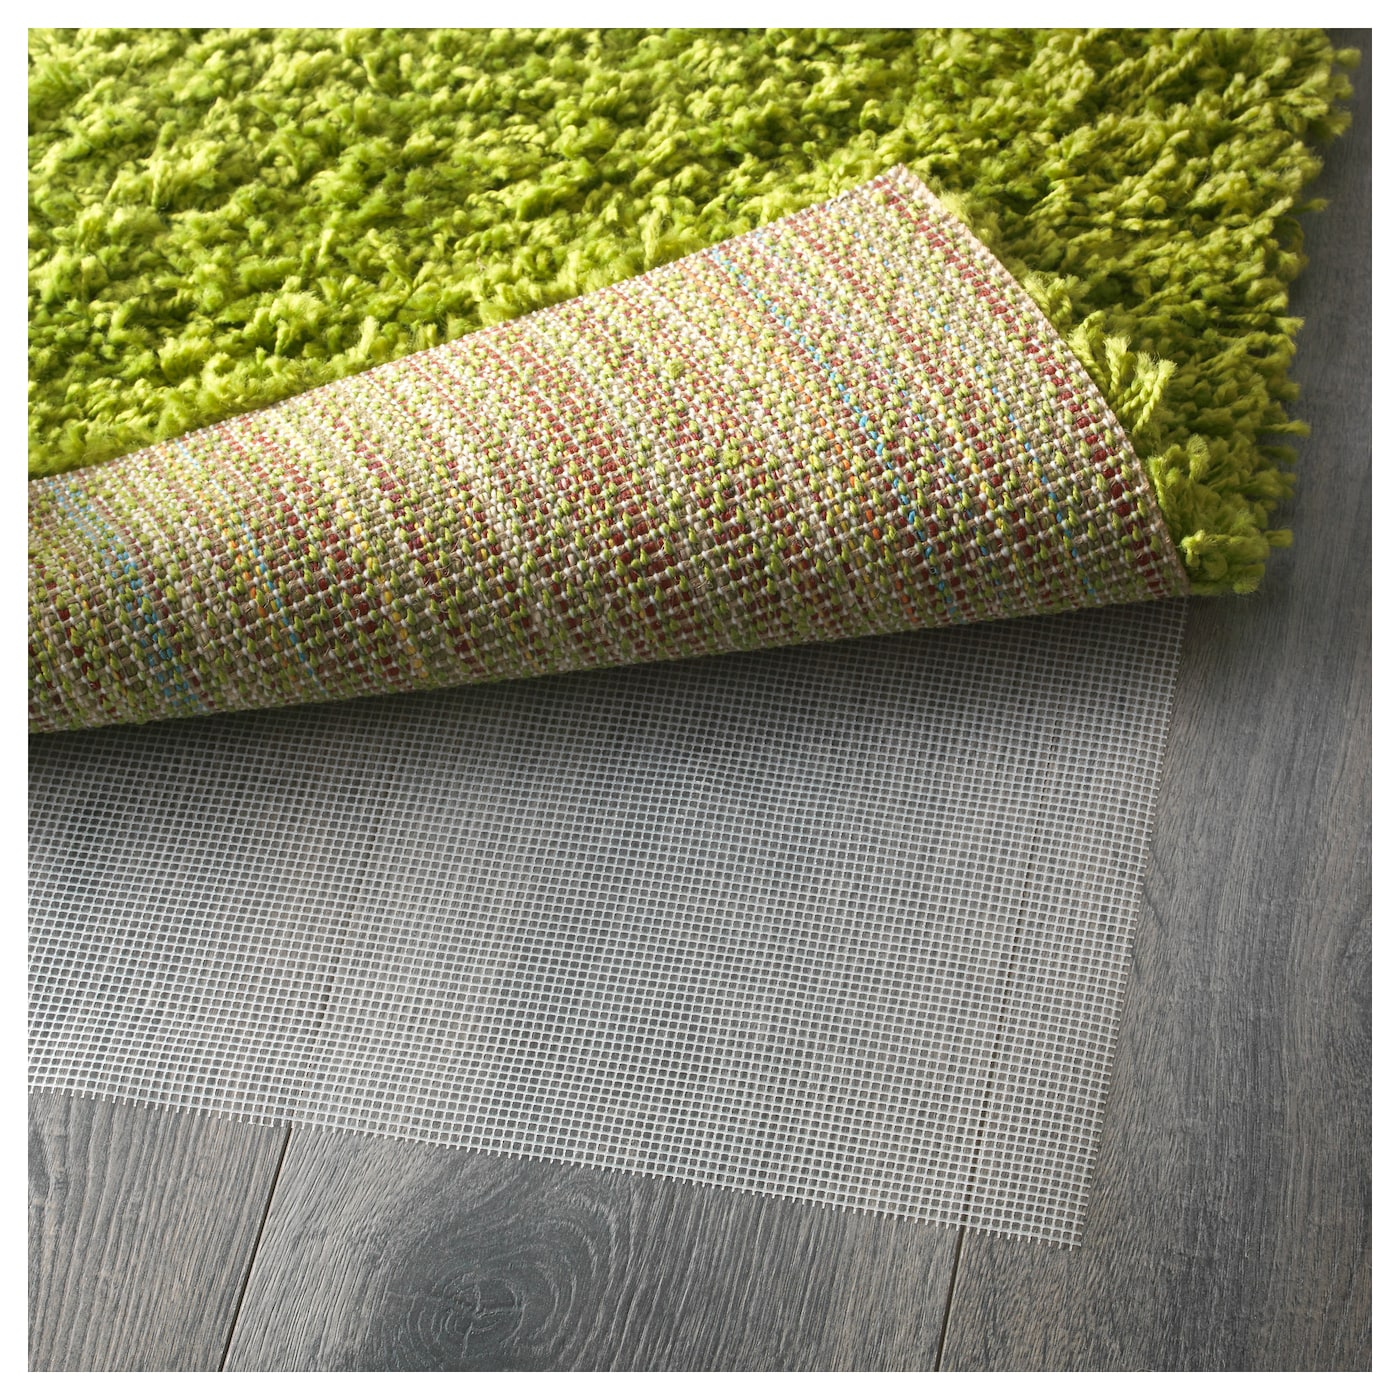 HAMPEN Rug, High Pile Bright Green 133 X 195 Cm